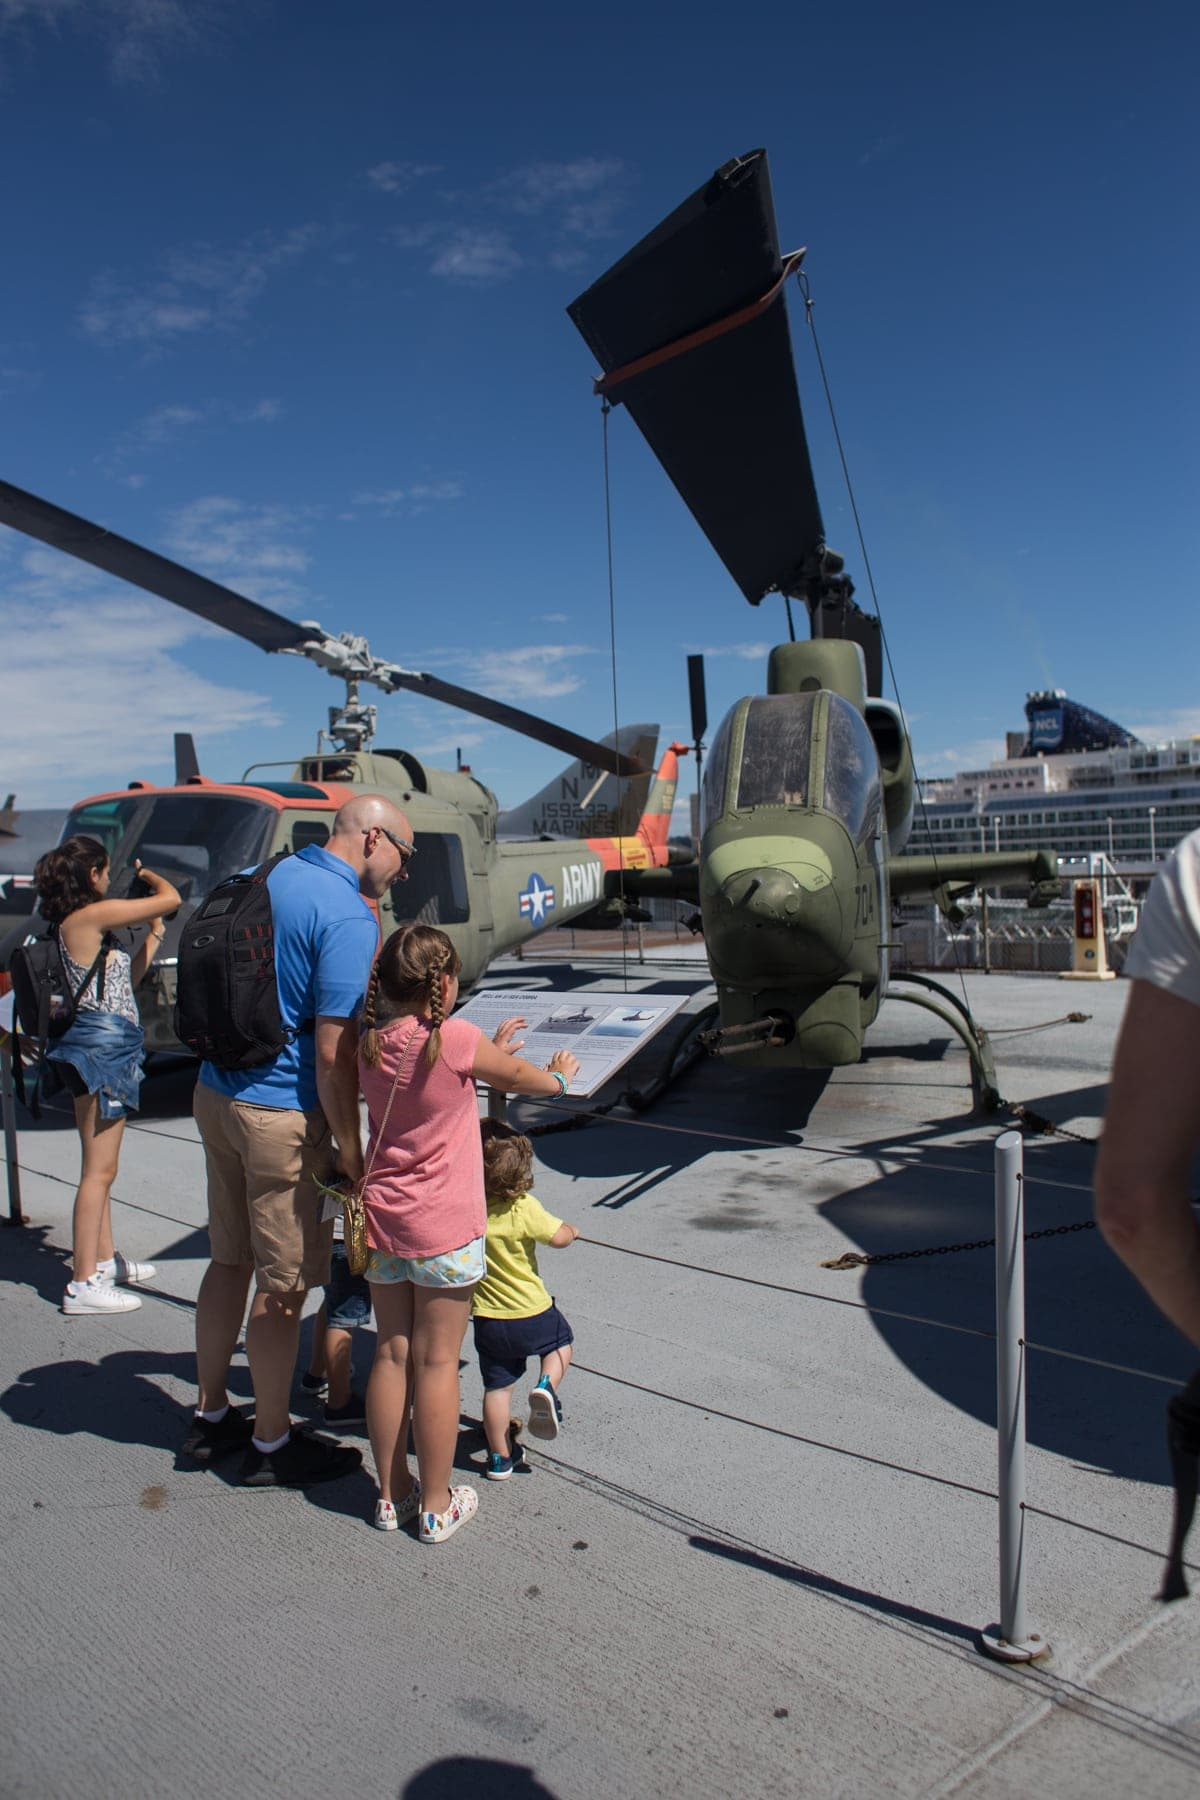 Gordon and the kids in front of a helicopter